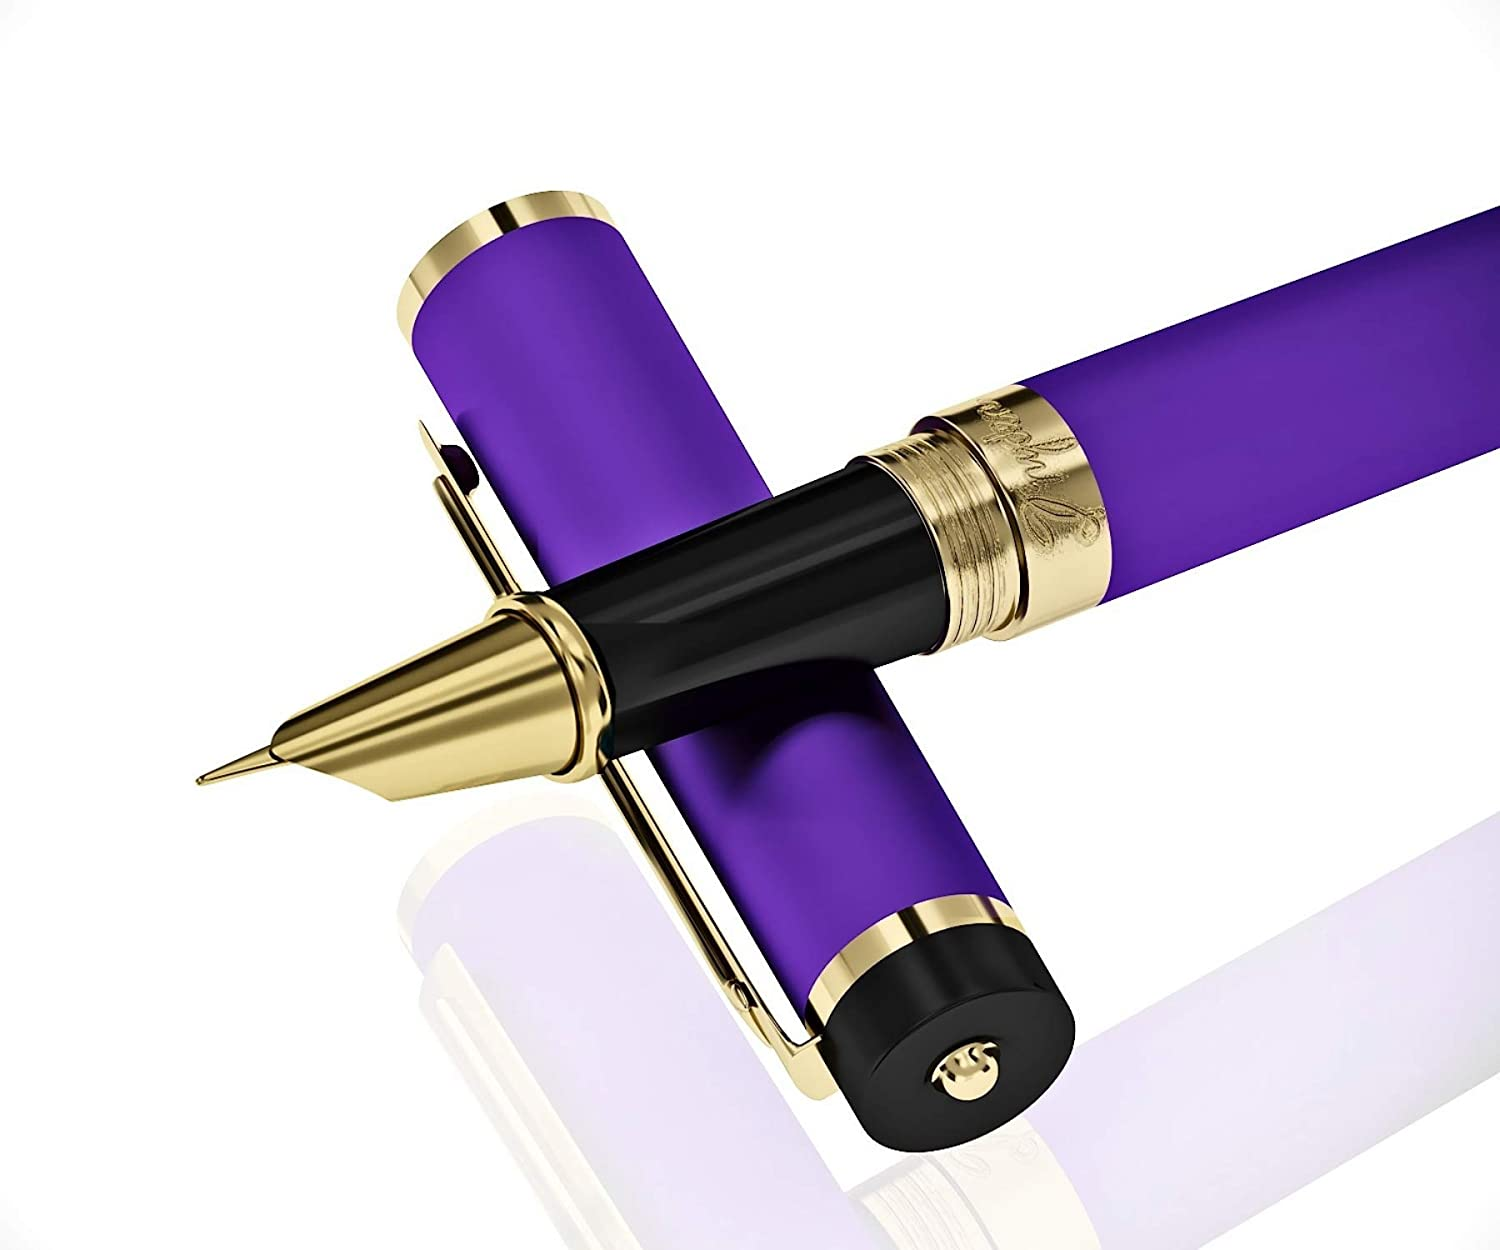 Dryden Designs Fountain Pen Fine Nib, Includes Gift Box and Ink Refill Converter, Classic Writing - Decadent Purple for Left and Right Handed